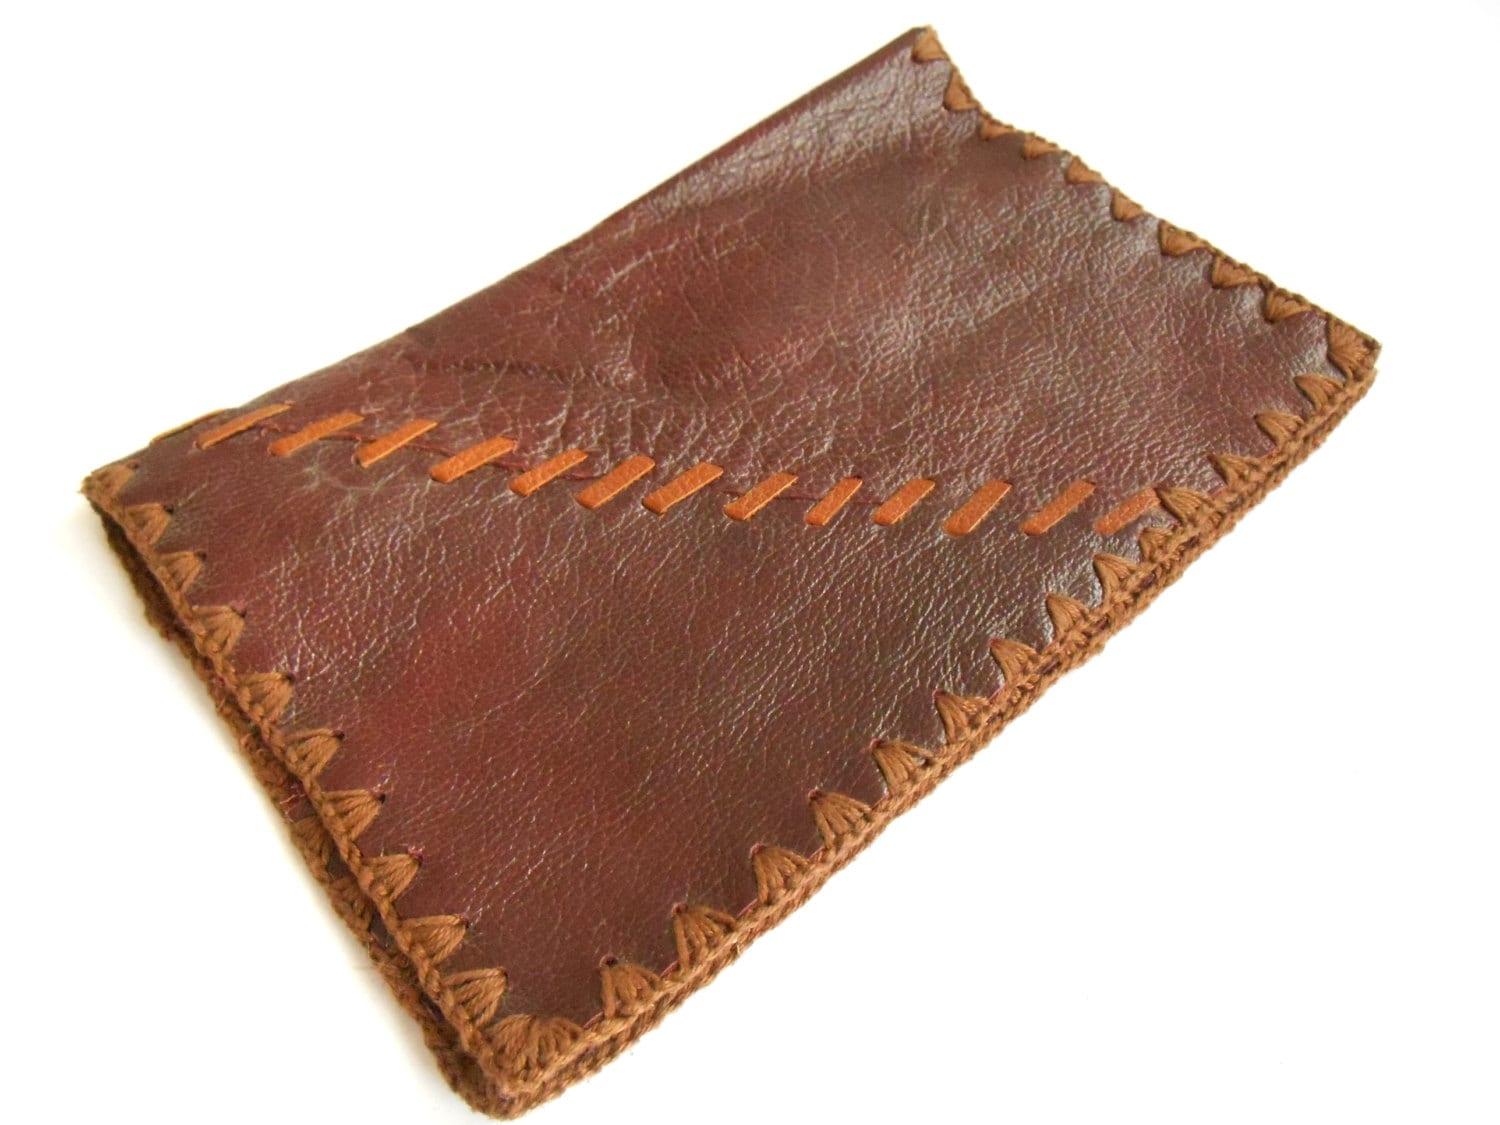 Vintage Leather Book Cover : Vintage leather book covers dark red soft